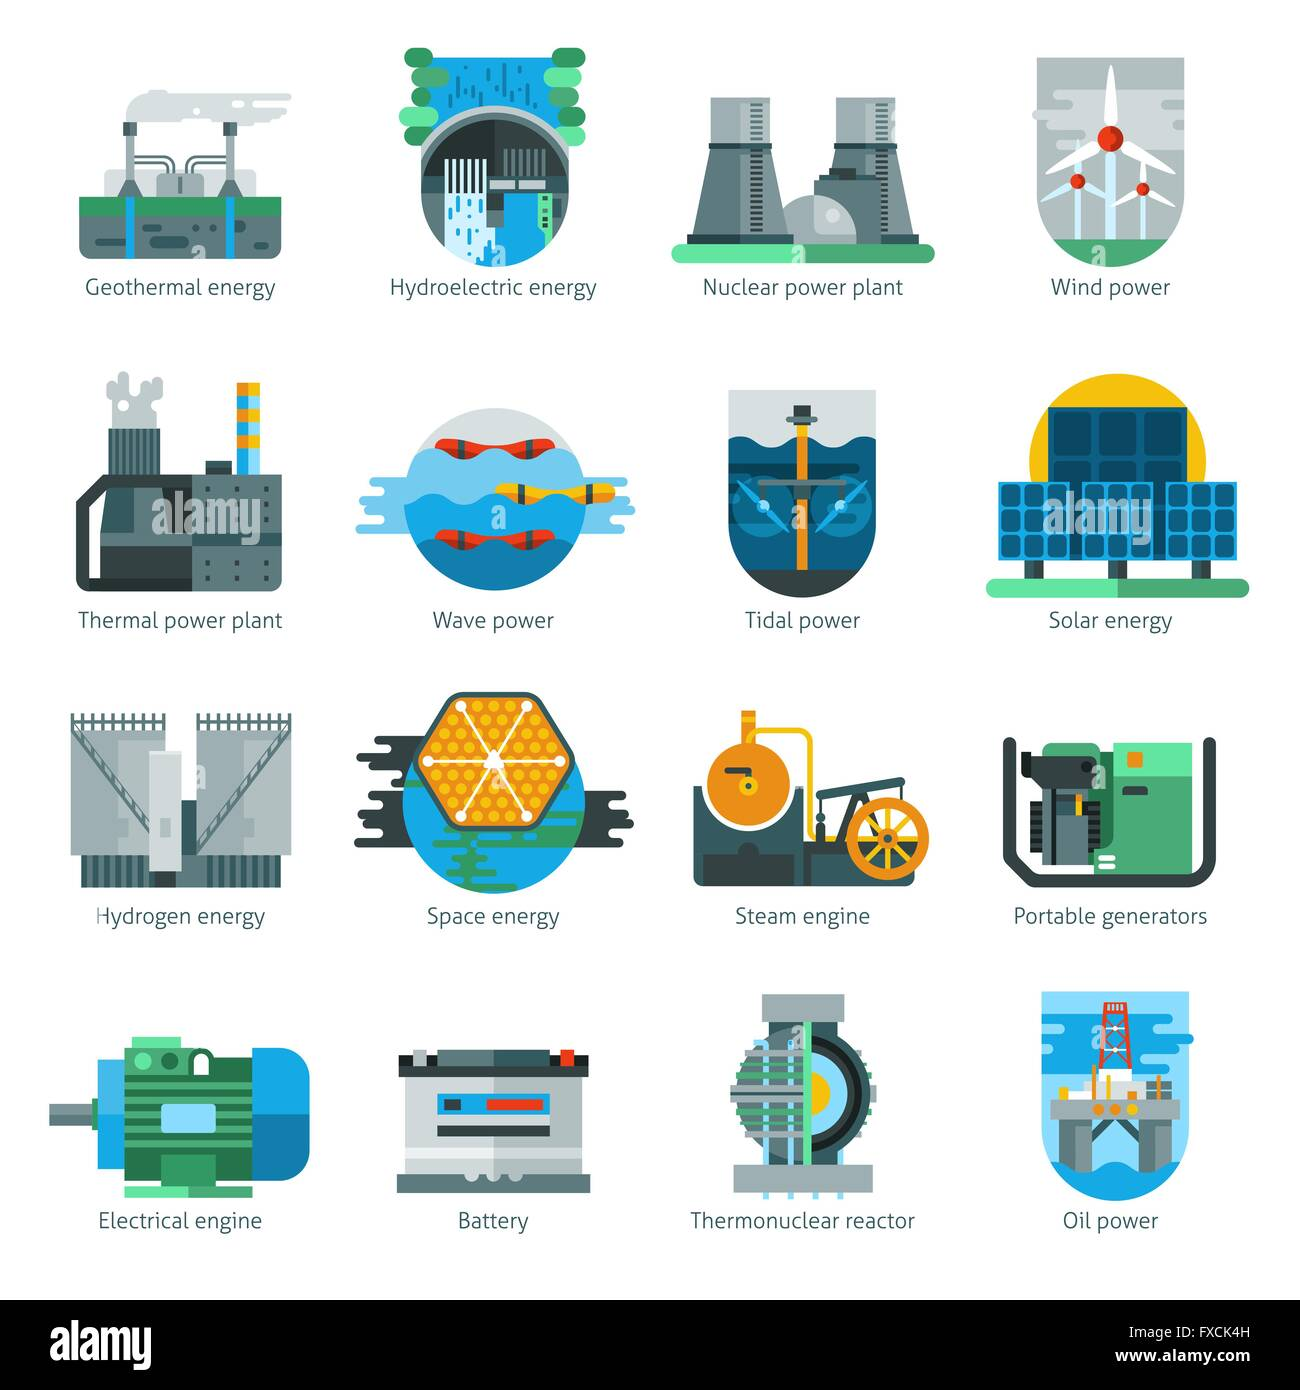 Thermal Power Plant Cut Out Stock Images Pictures Alamy Oil Diagram Energy Production Icons Image